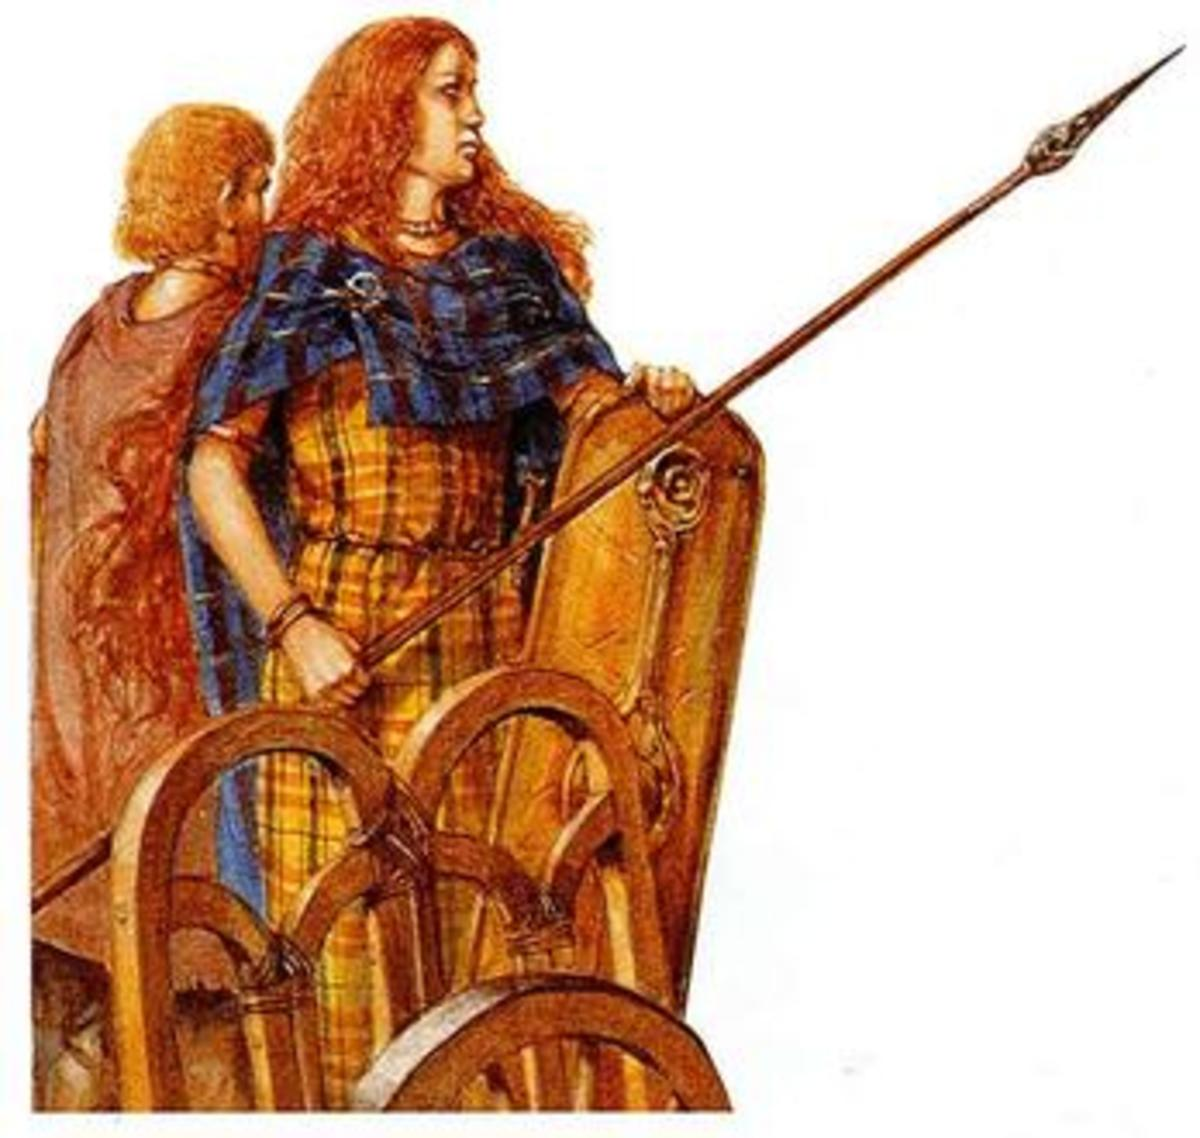 Boudica on her chariot